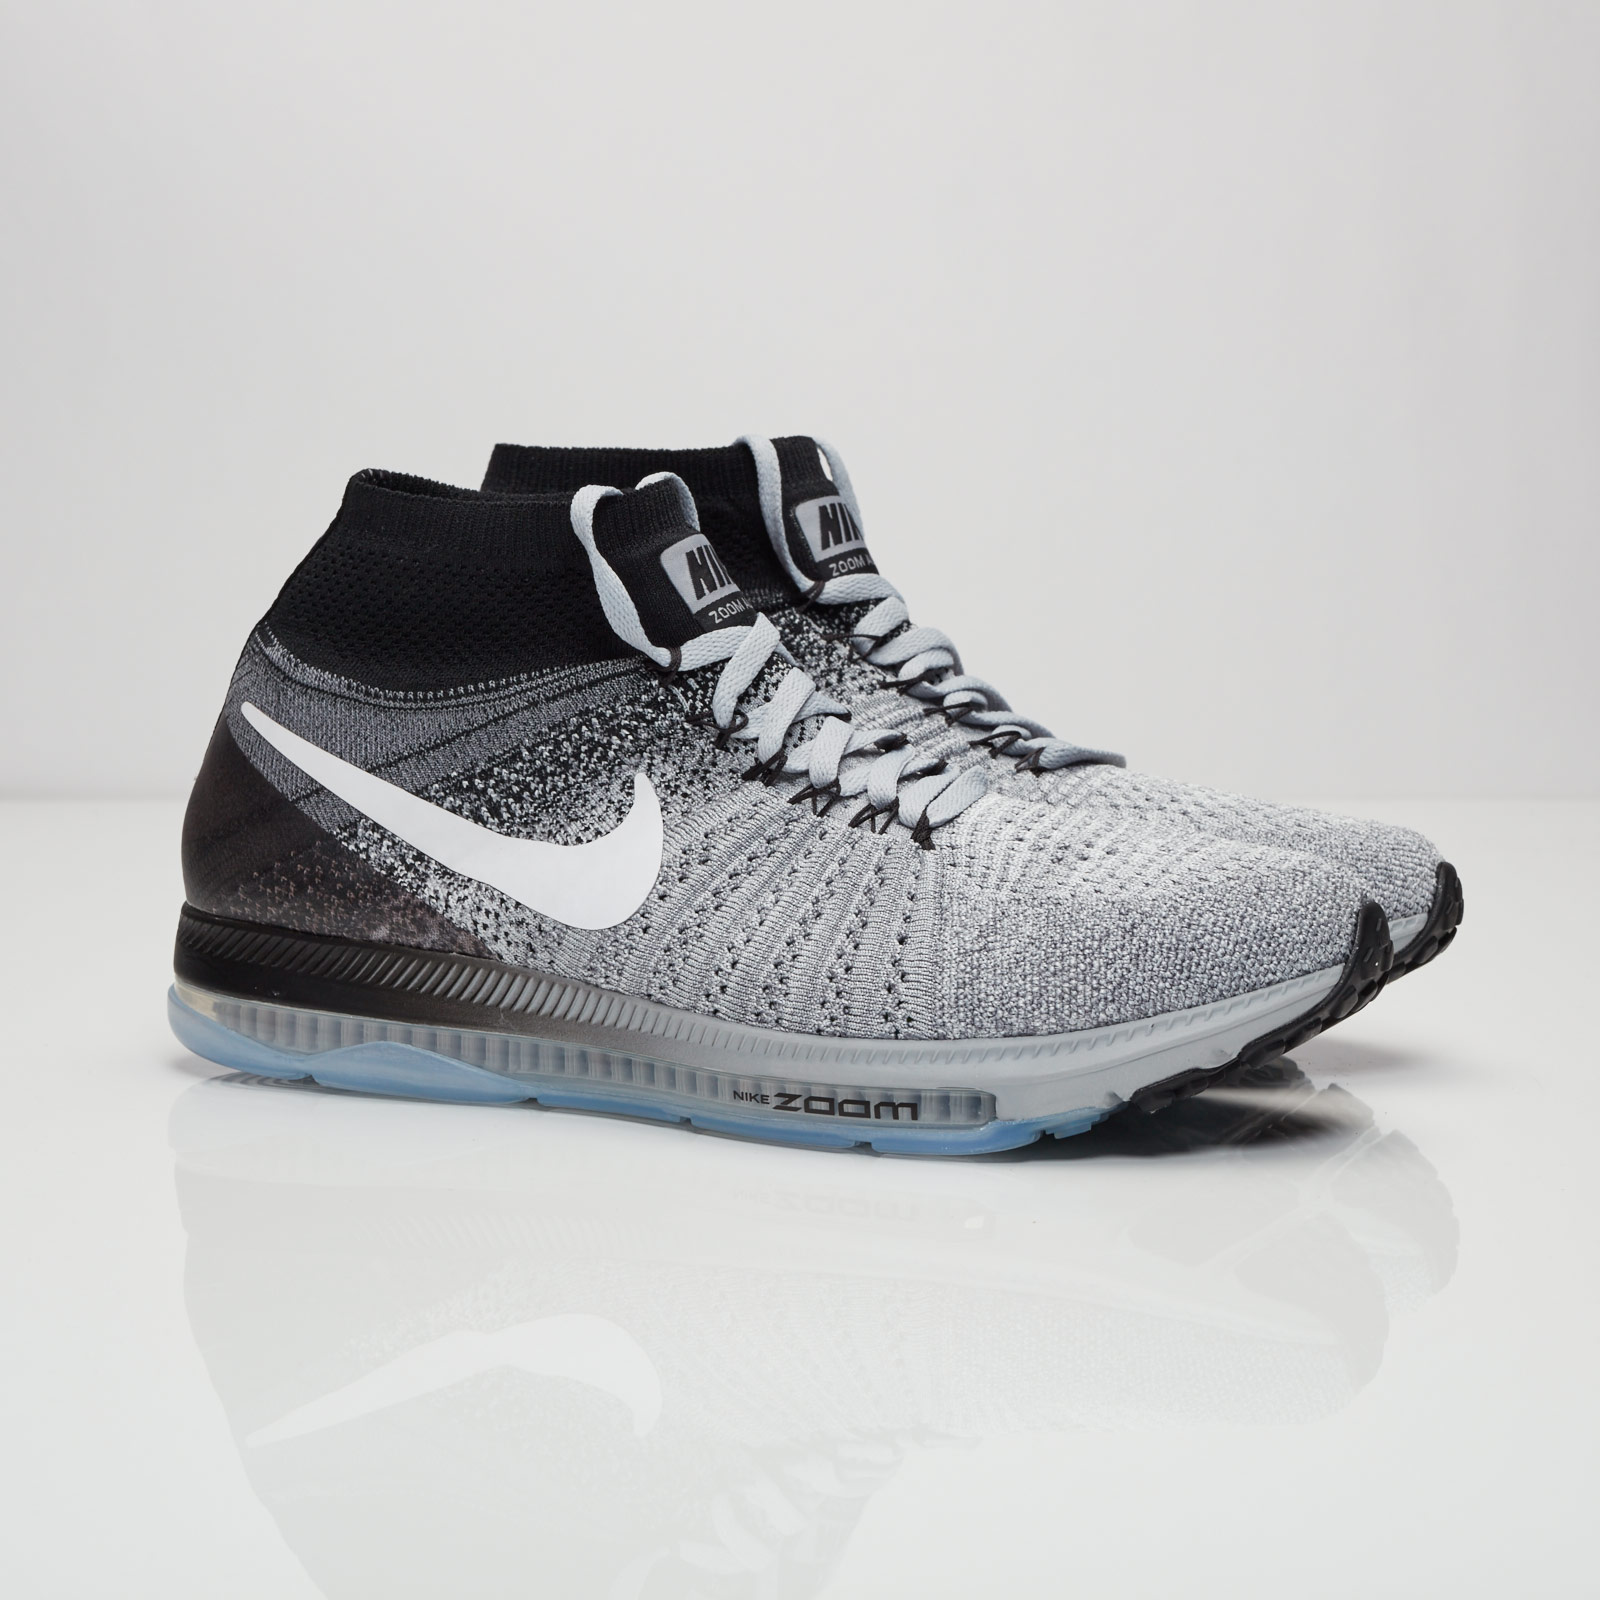 90d7b7cd594d3 Nike Zoom All Out Flyknit - 844134-003 - Sneakersnstuff